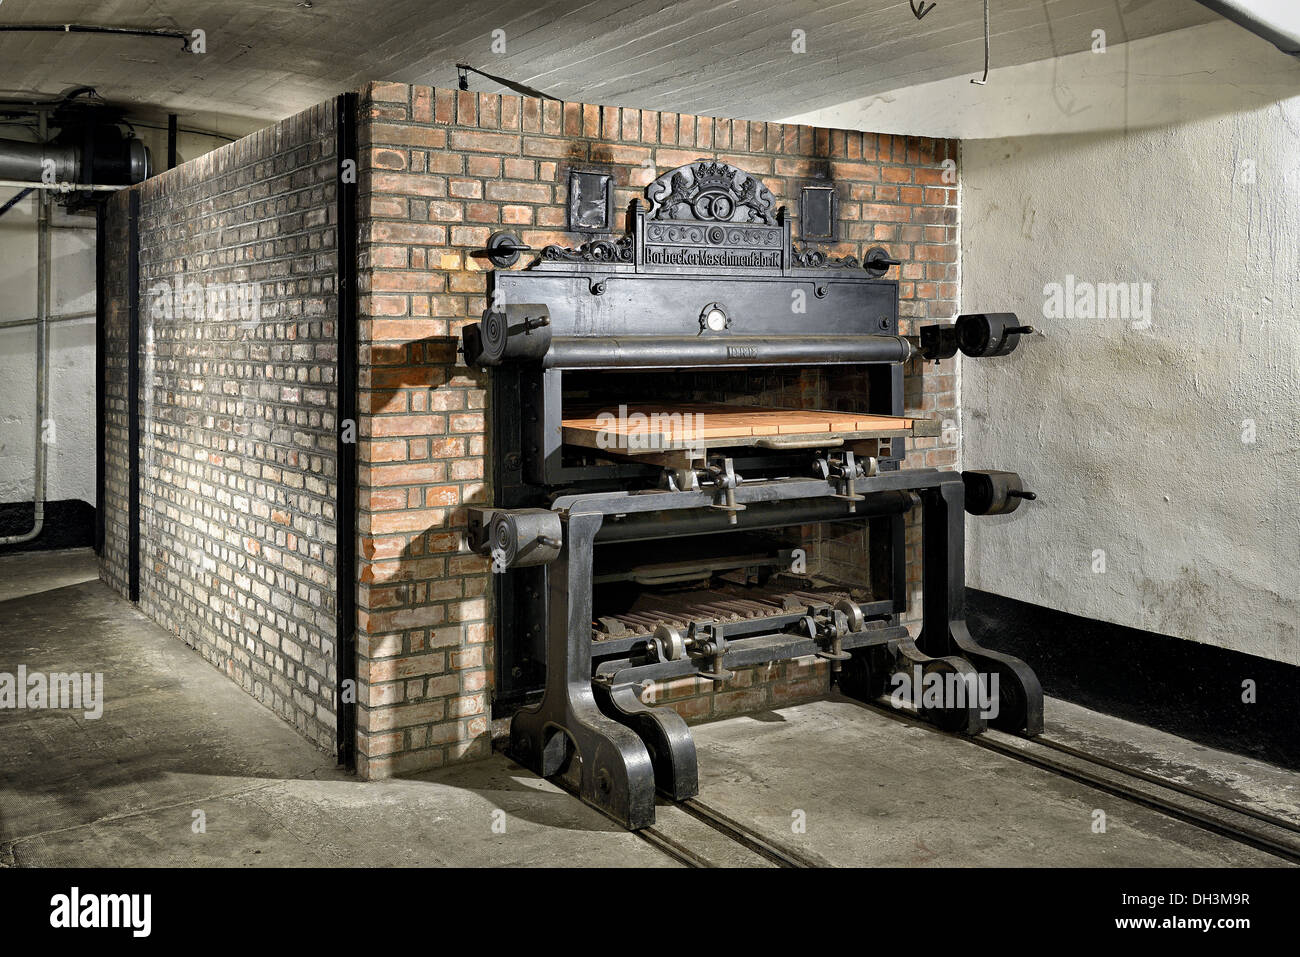 Bread oven, Guentrange fortress, Maginot line. - Stock Image